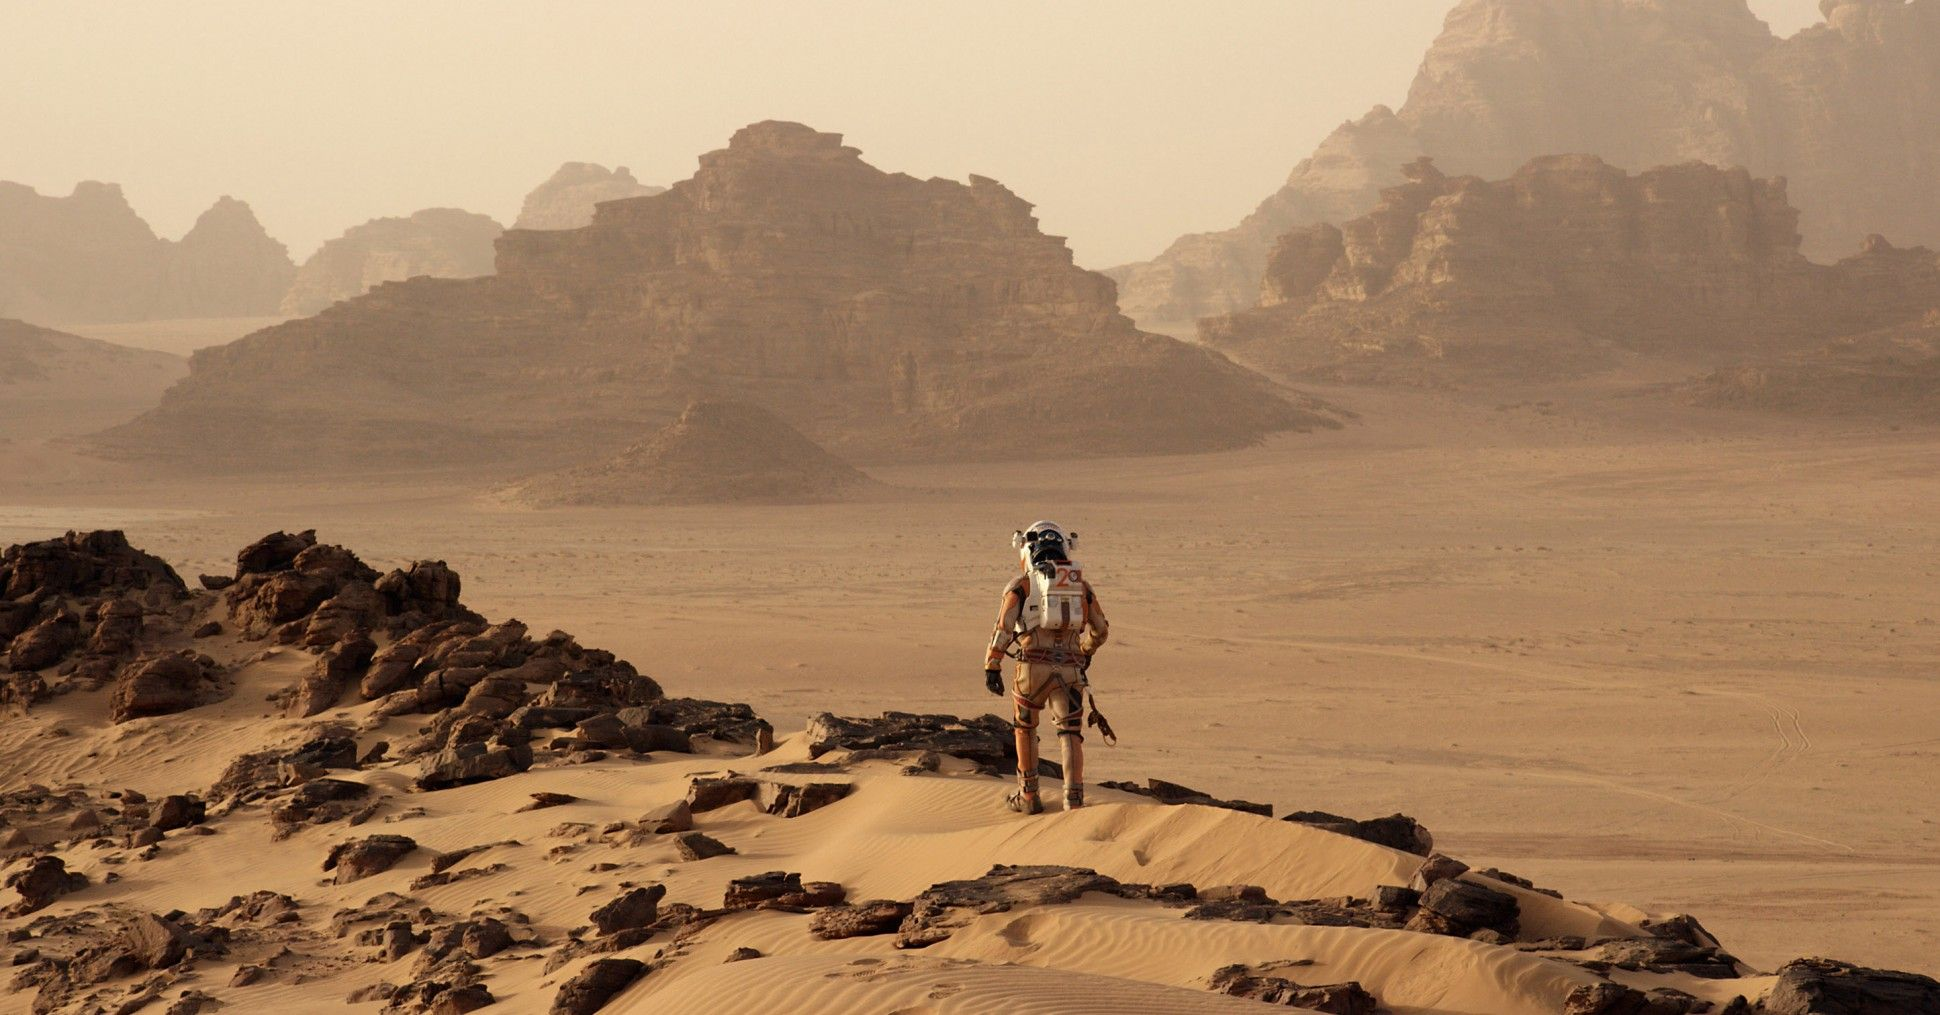 """Matt Damon stars as a NASA astronaut stranded on the Martian surface in the forthcoming film adaptation of Andy Weir's """"The Martian."""" Credit: Twentieth Century Fox."""